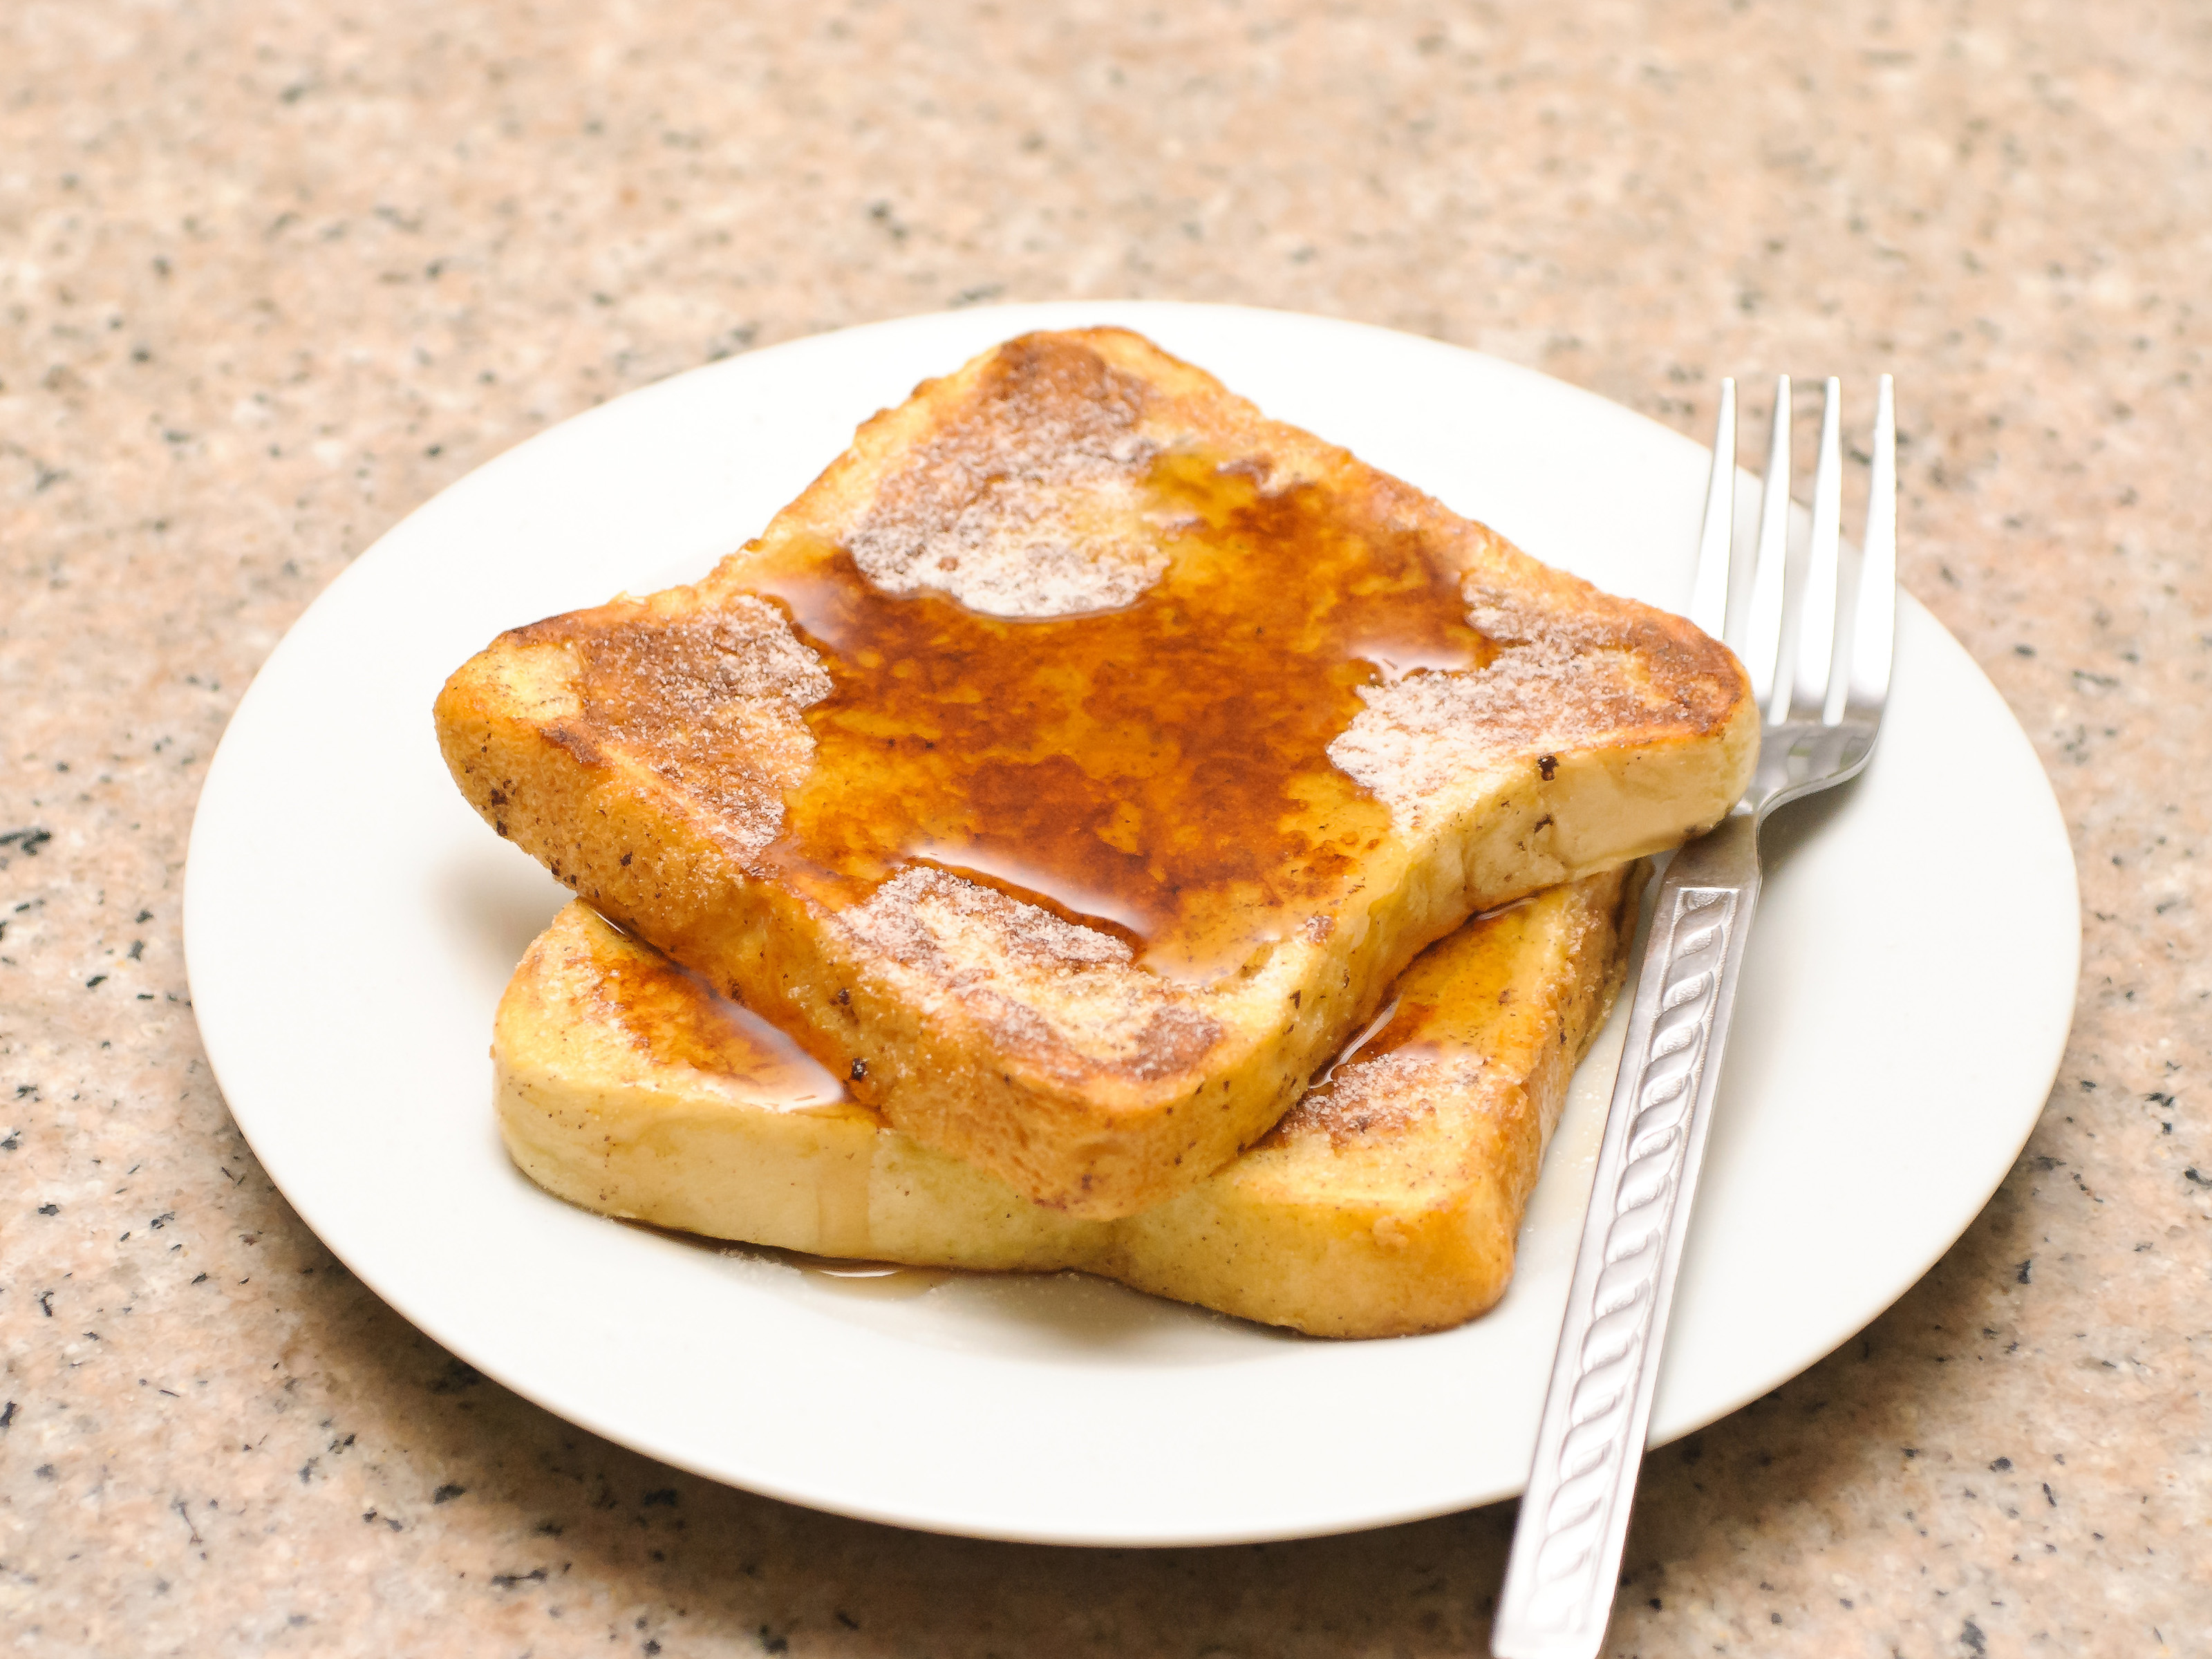 Forchetta Bread Come Preparare Un French Toast Senza Vaniglia - Wikihow